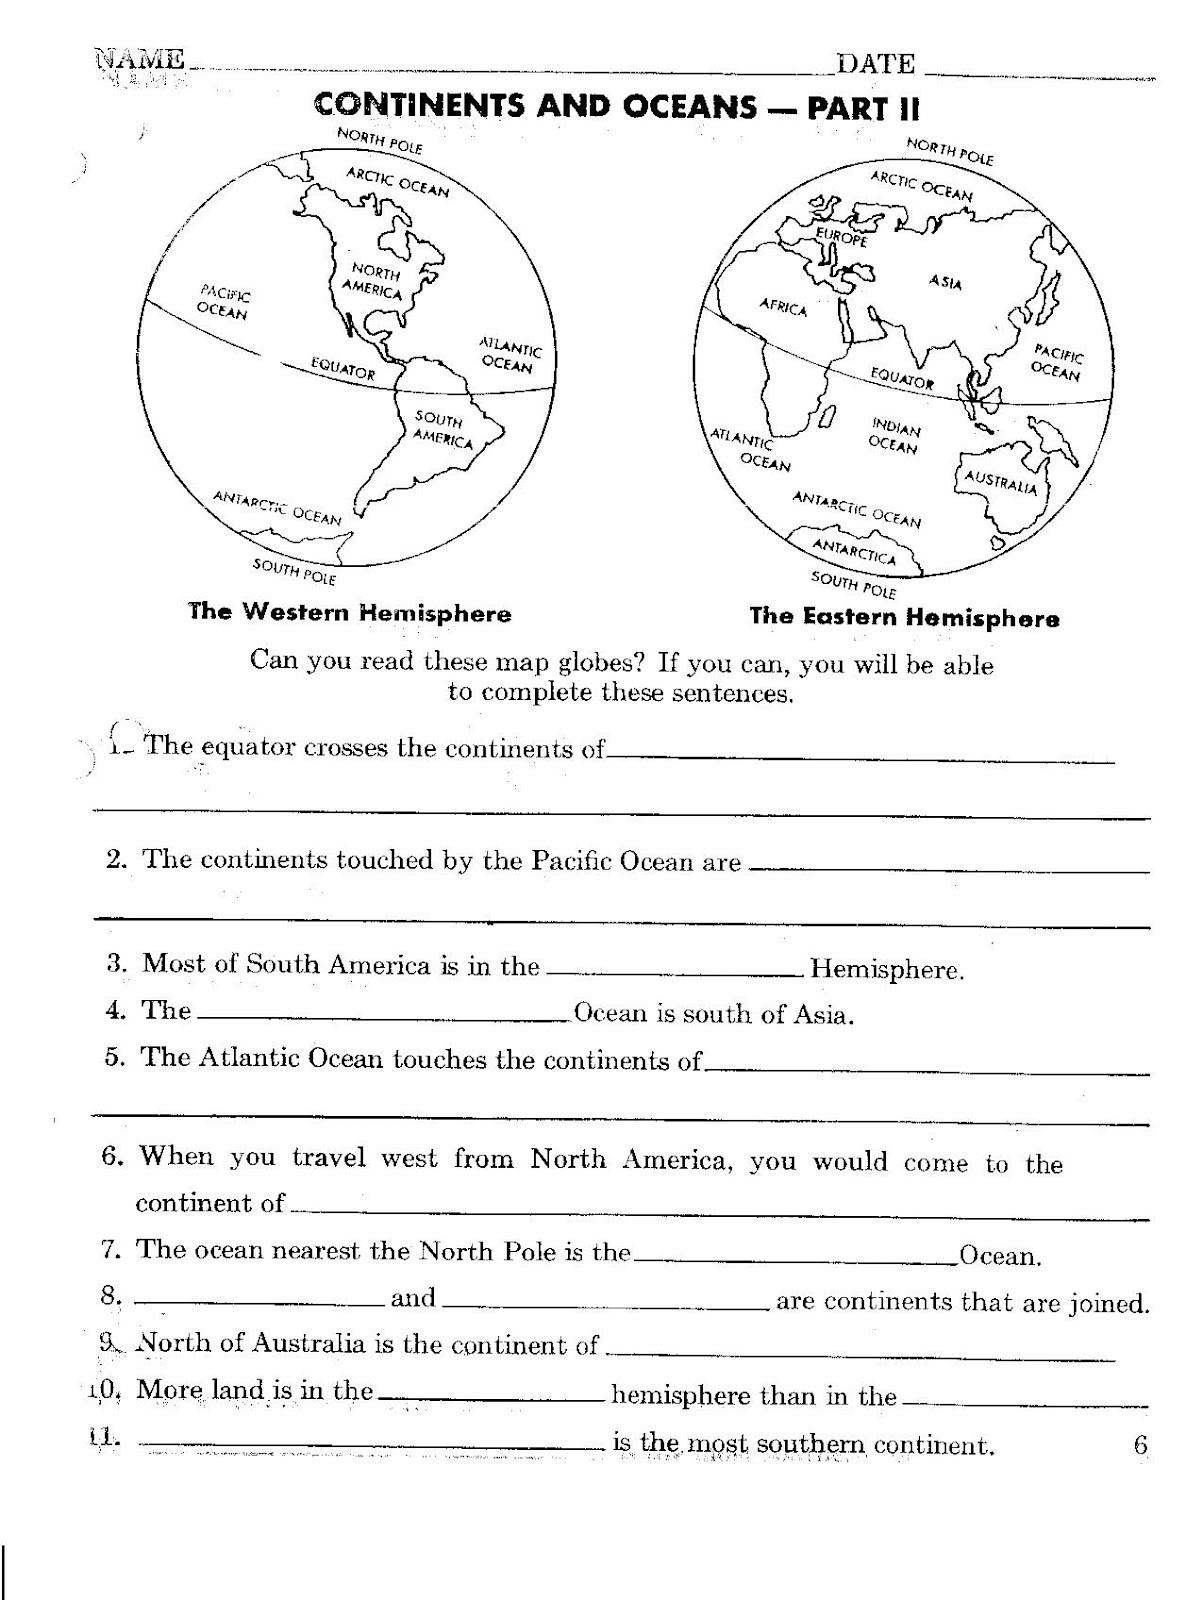 Hemisphere Worksheets 6th Grade Help with Homework for social Stu S Help with Essay Writing